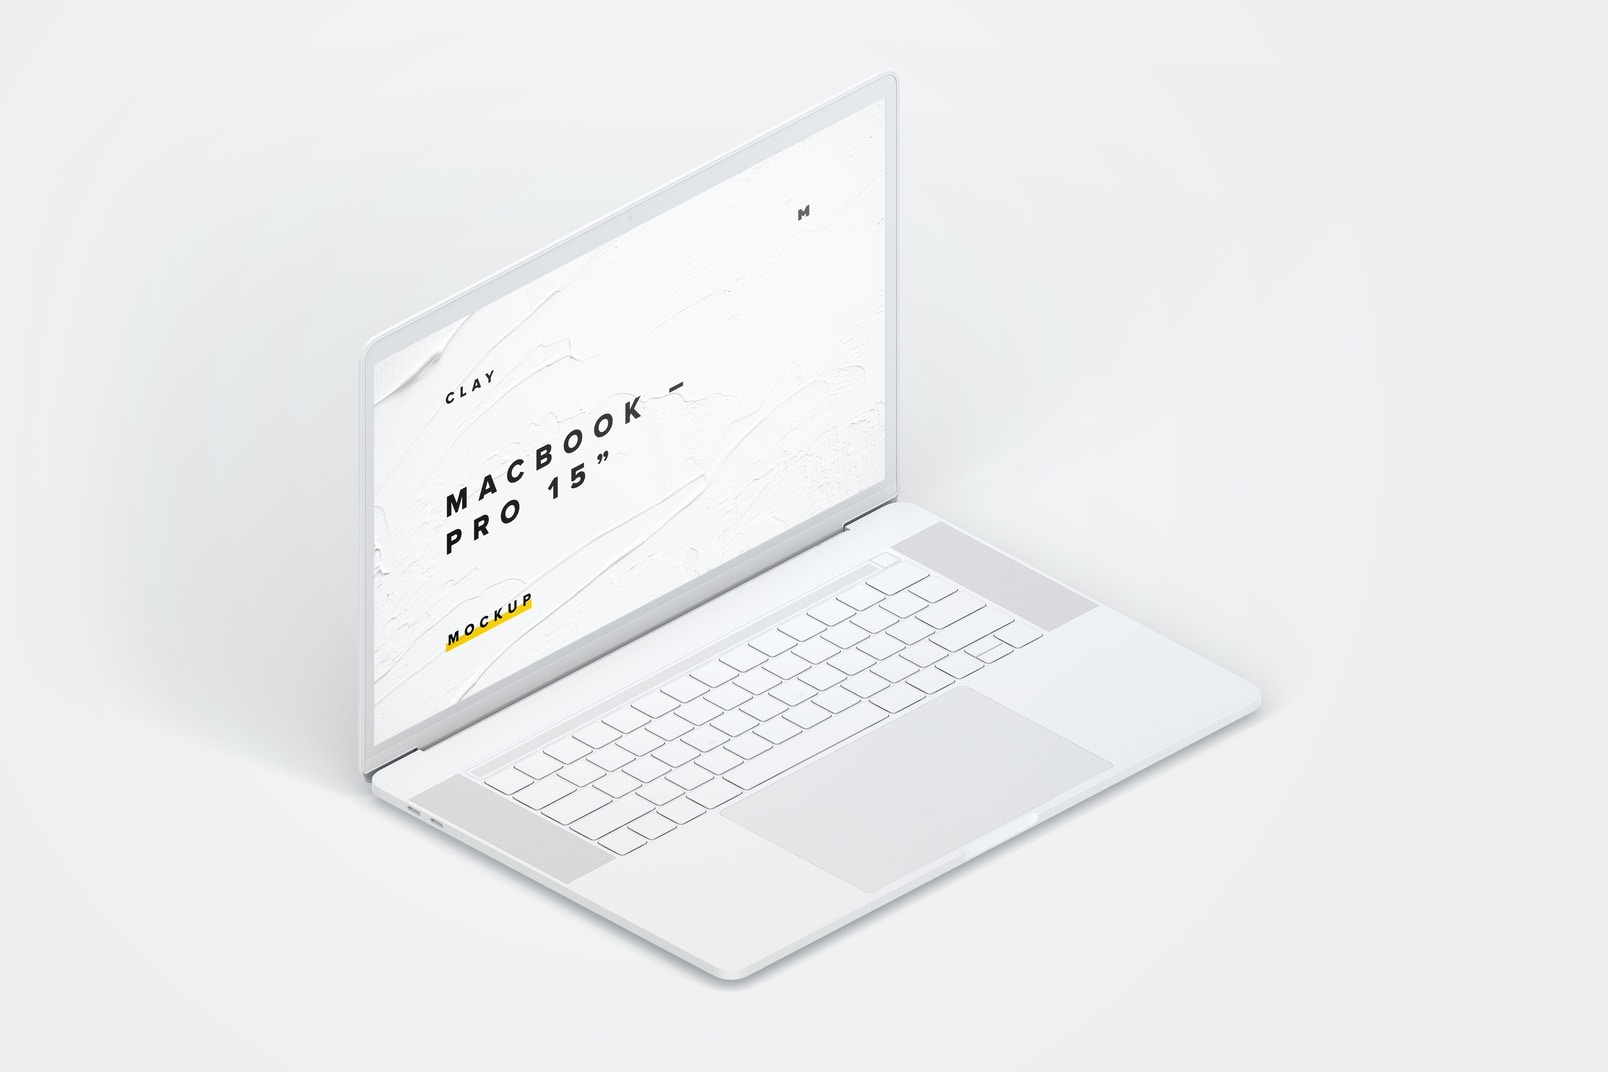 """Clay MacBook Pro 15"""" with Touch Bar, Left Isometric View Mockup"""